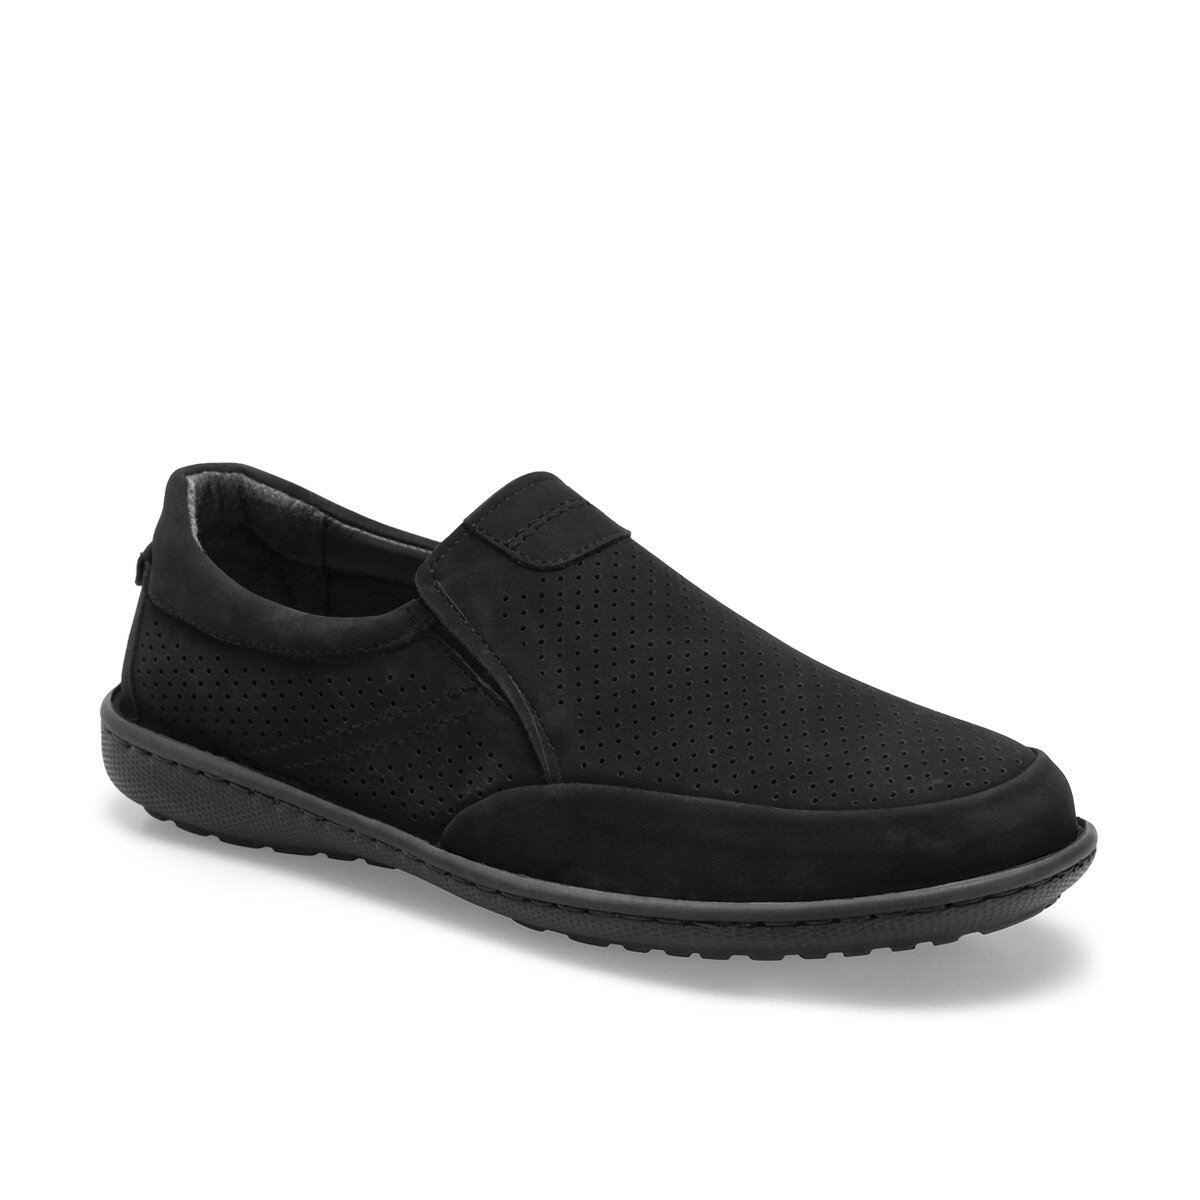 FLO ZMRT-7 C Black Men 'S Classic Shoes Flexall